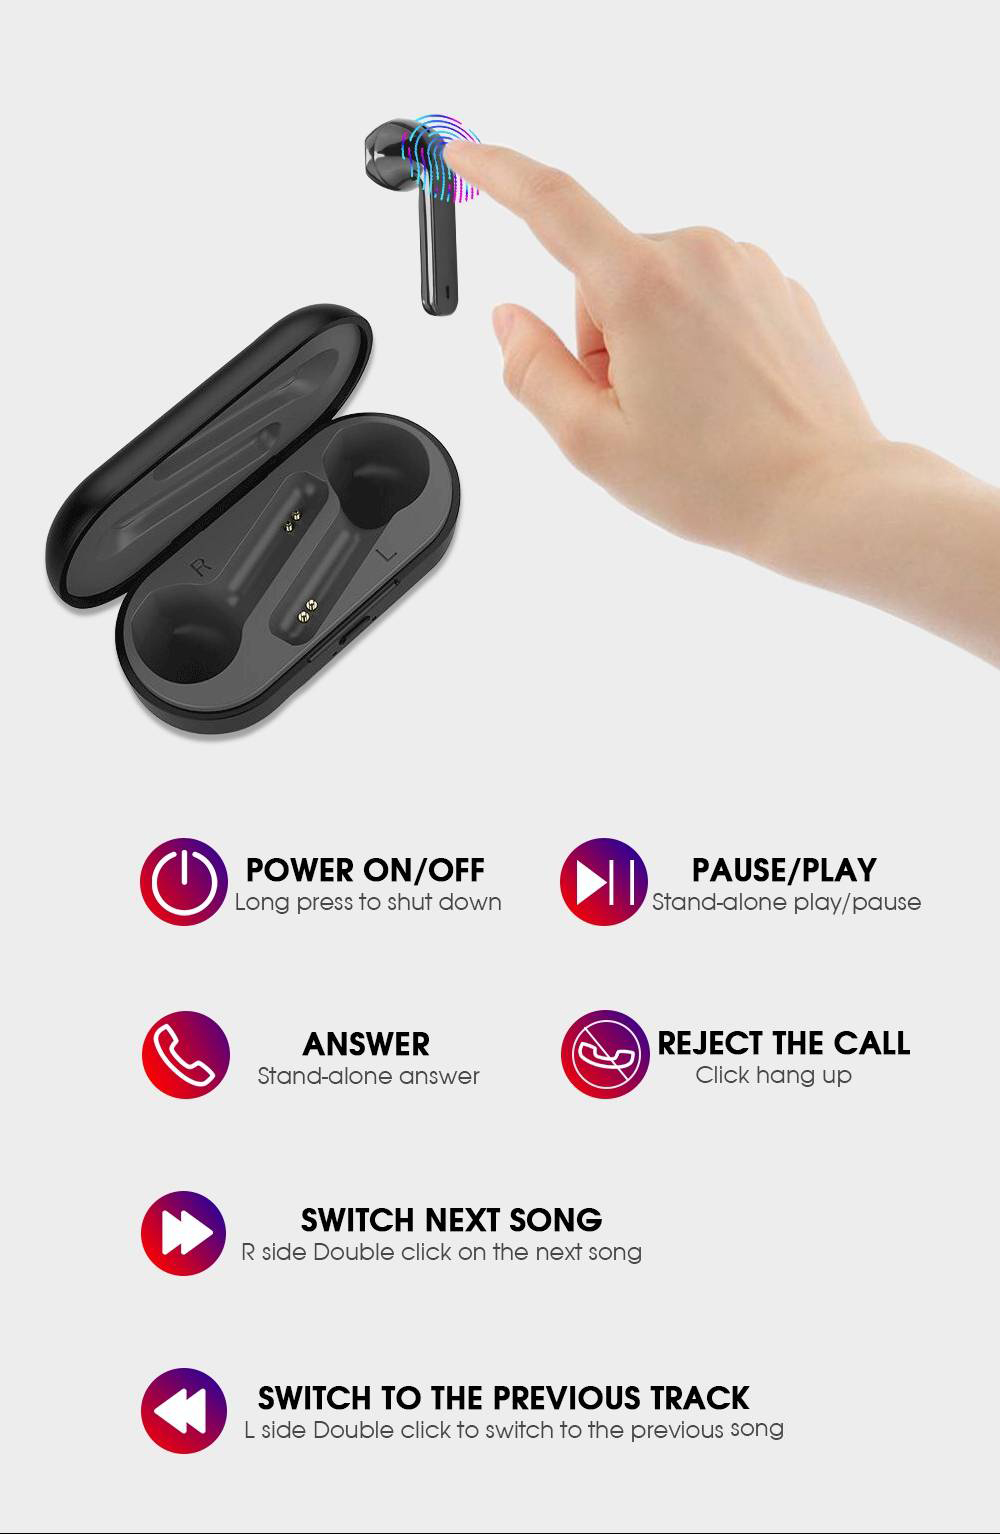 YTOM L8 Bluetooth 5.0 True Wireless Earphones Independent Usage 300mAh Charging Box - Black